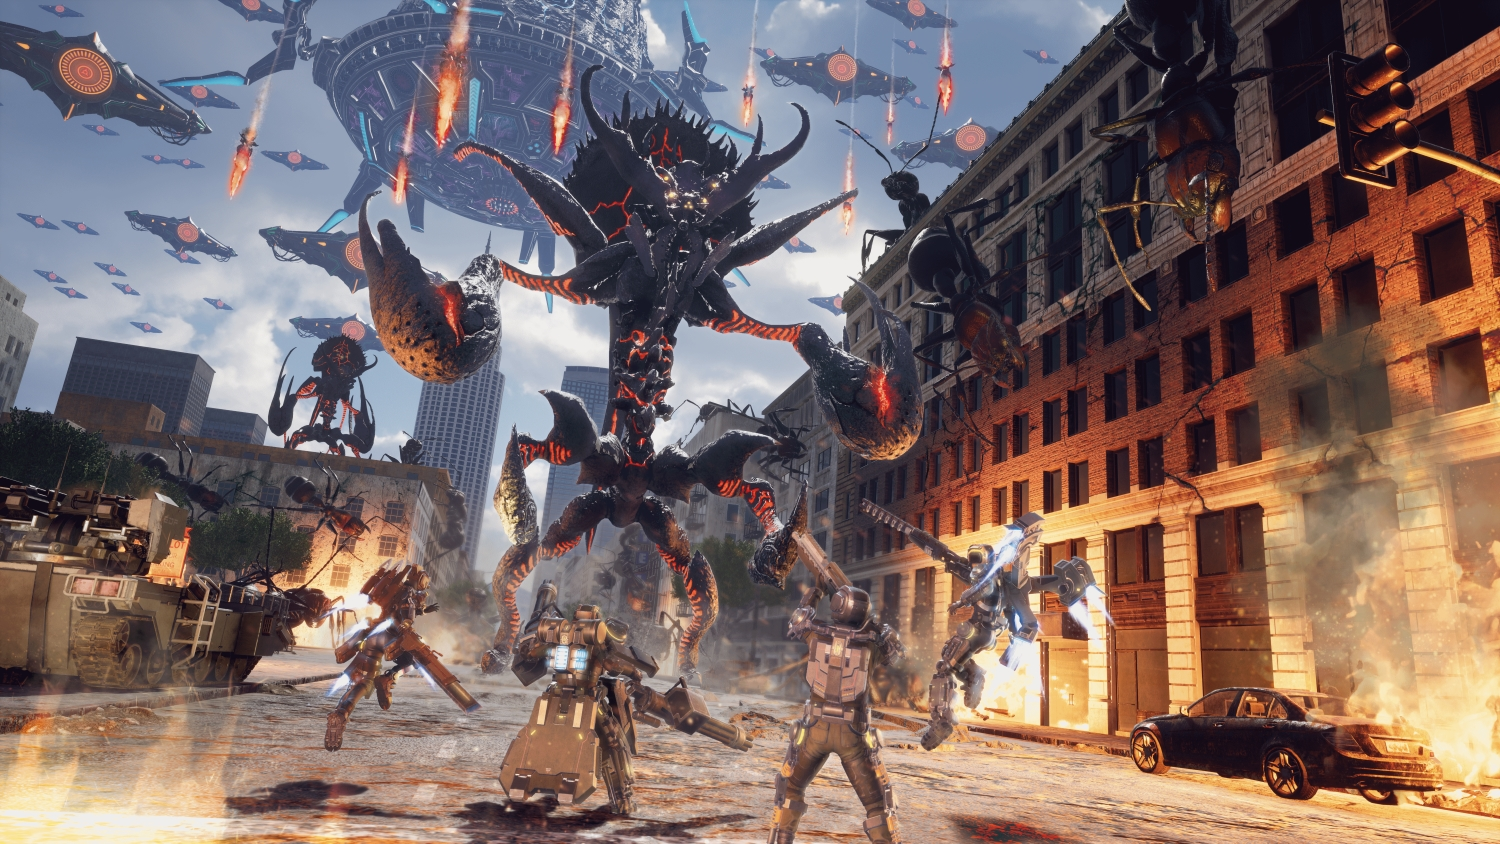 Earth Defense Force: Iron Rain review – seriously silly